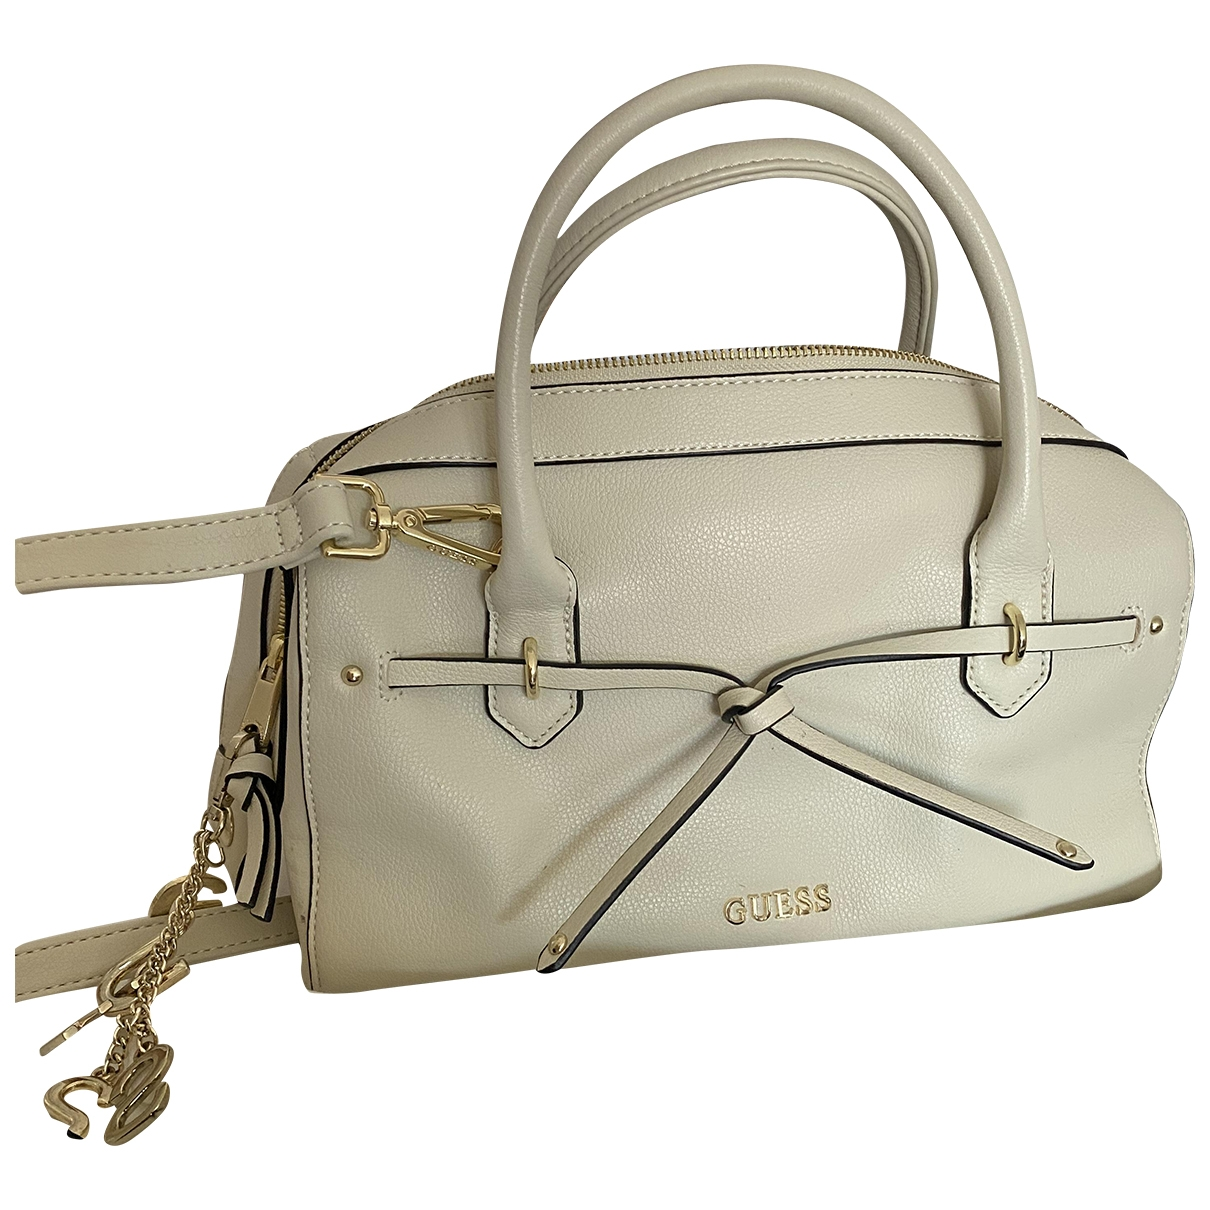 Guess \N Ecru handbag for Women \N